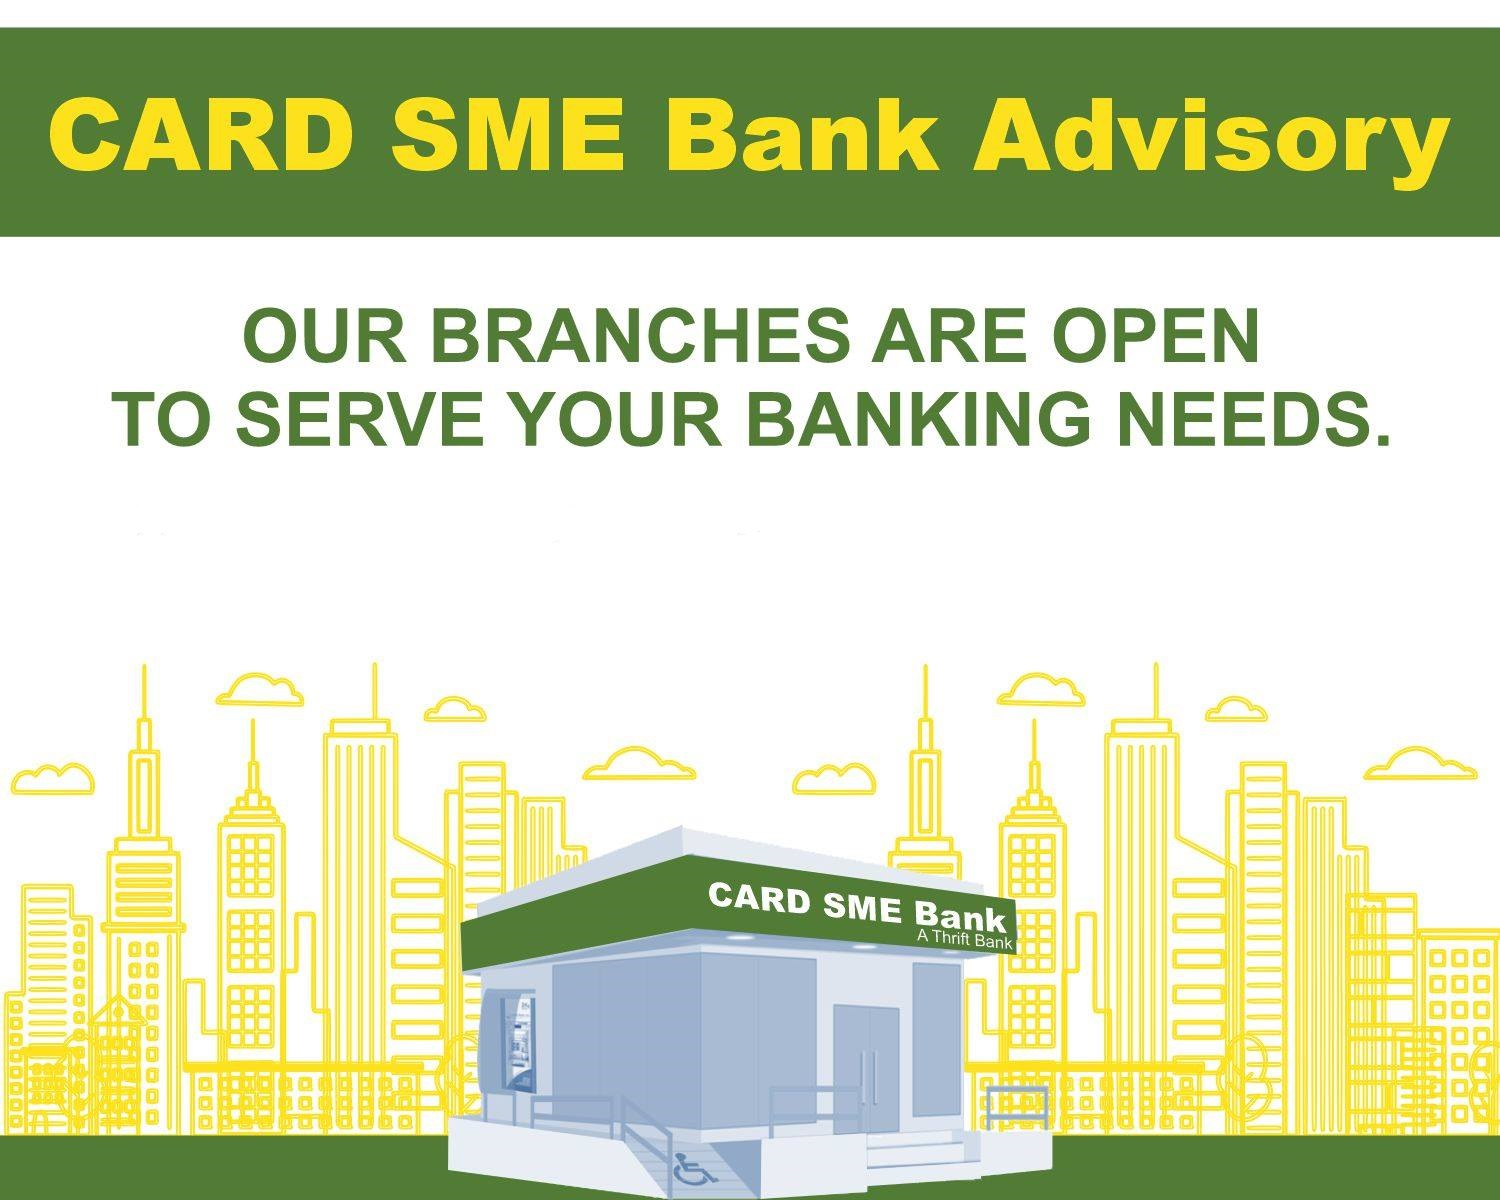 List of Branches and ATM Open